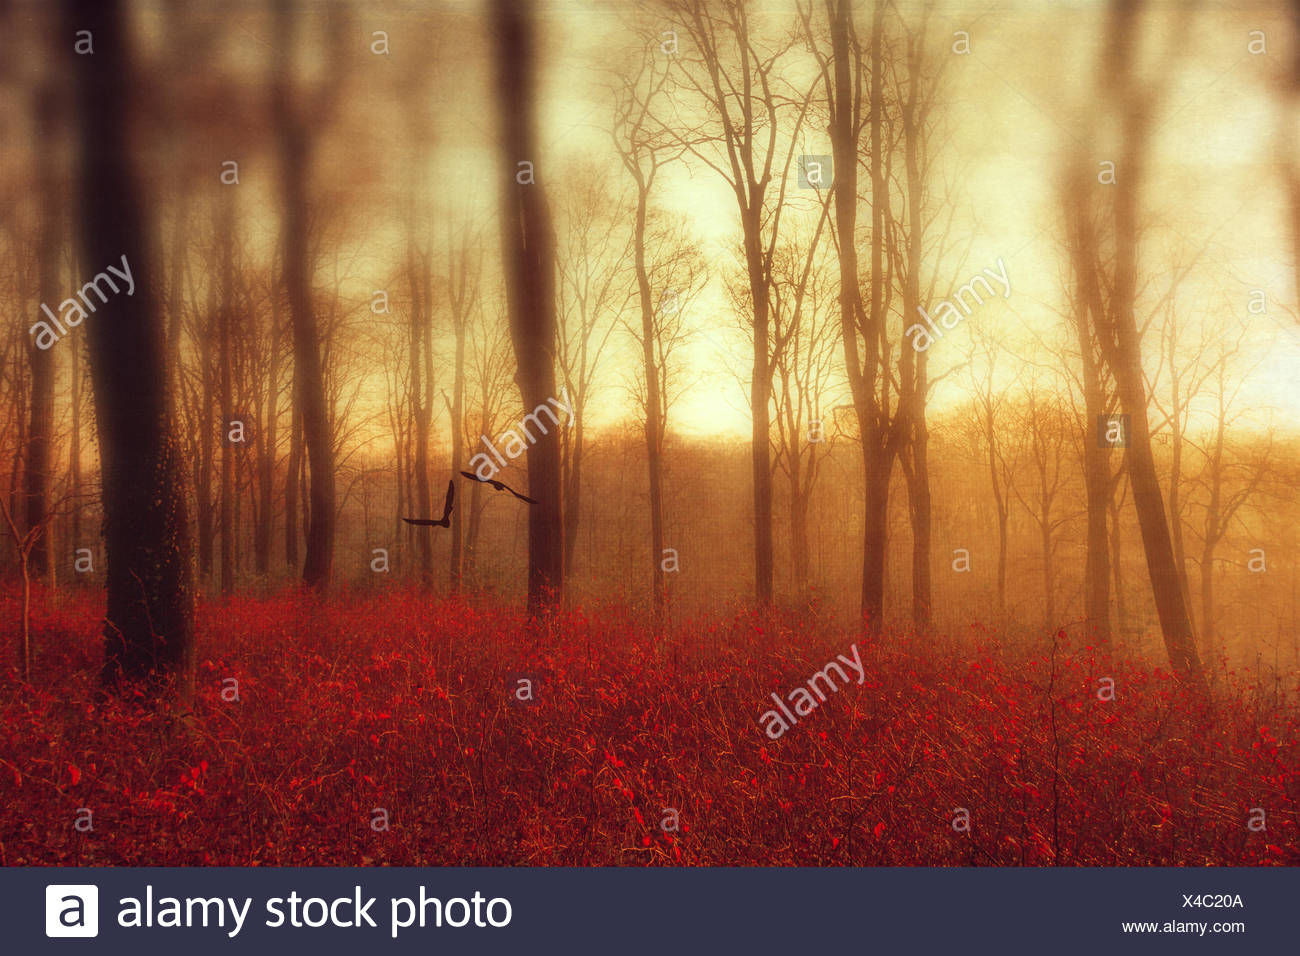 Autum forest and flying birds, digitally manipulated - Stock Image